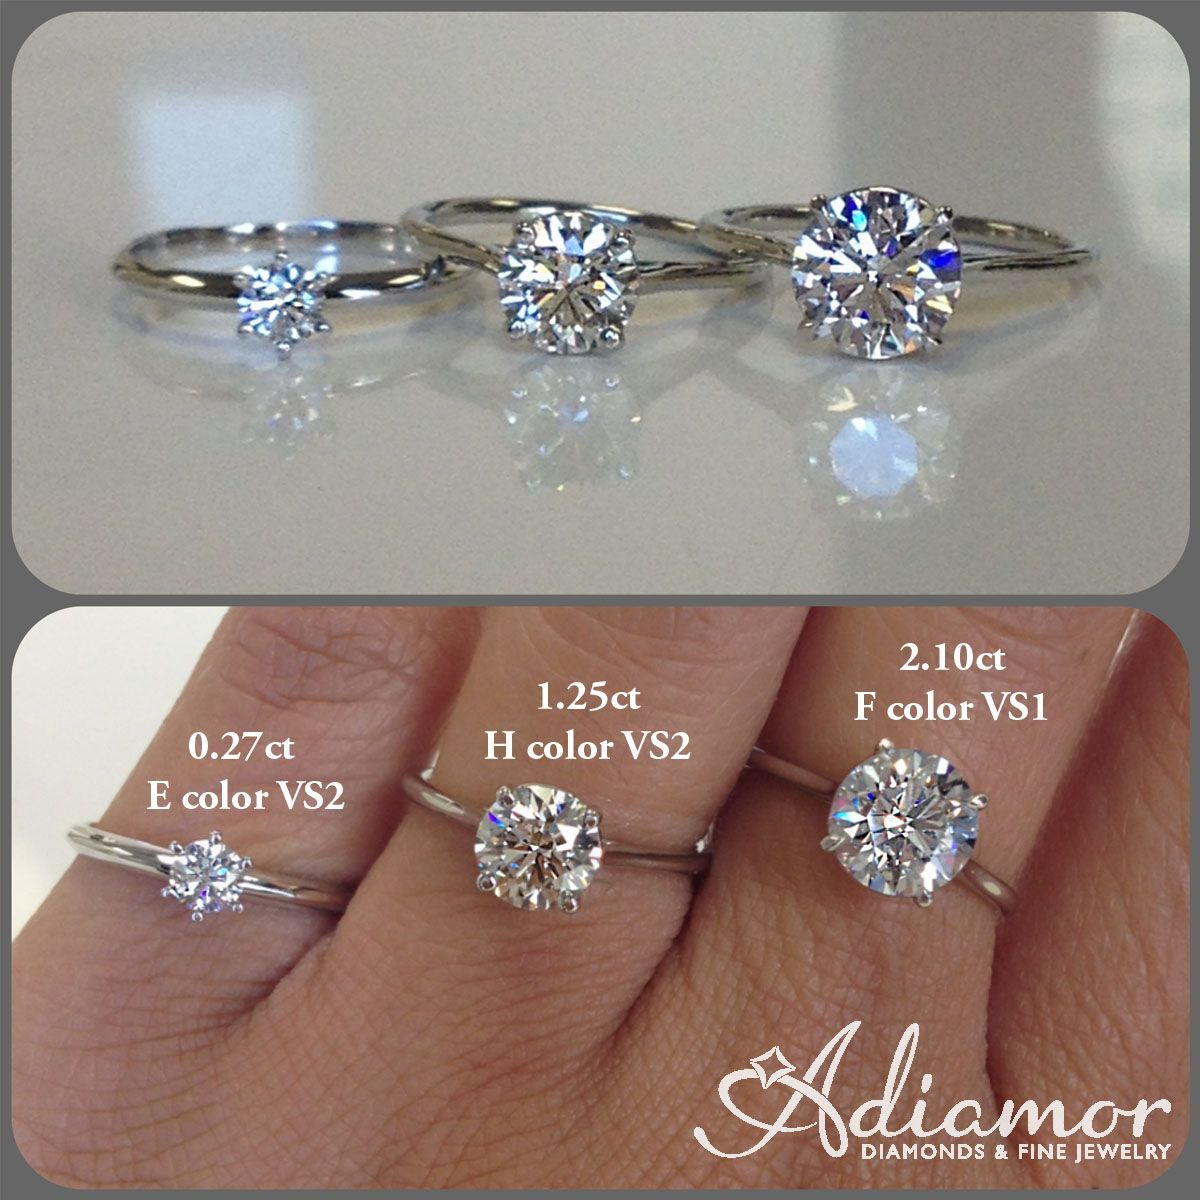 beff734d23d4c Here you can see different sizes and colors in comparison to each other.  #adiamor #roundcut #solitaire #diamond #engagementring